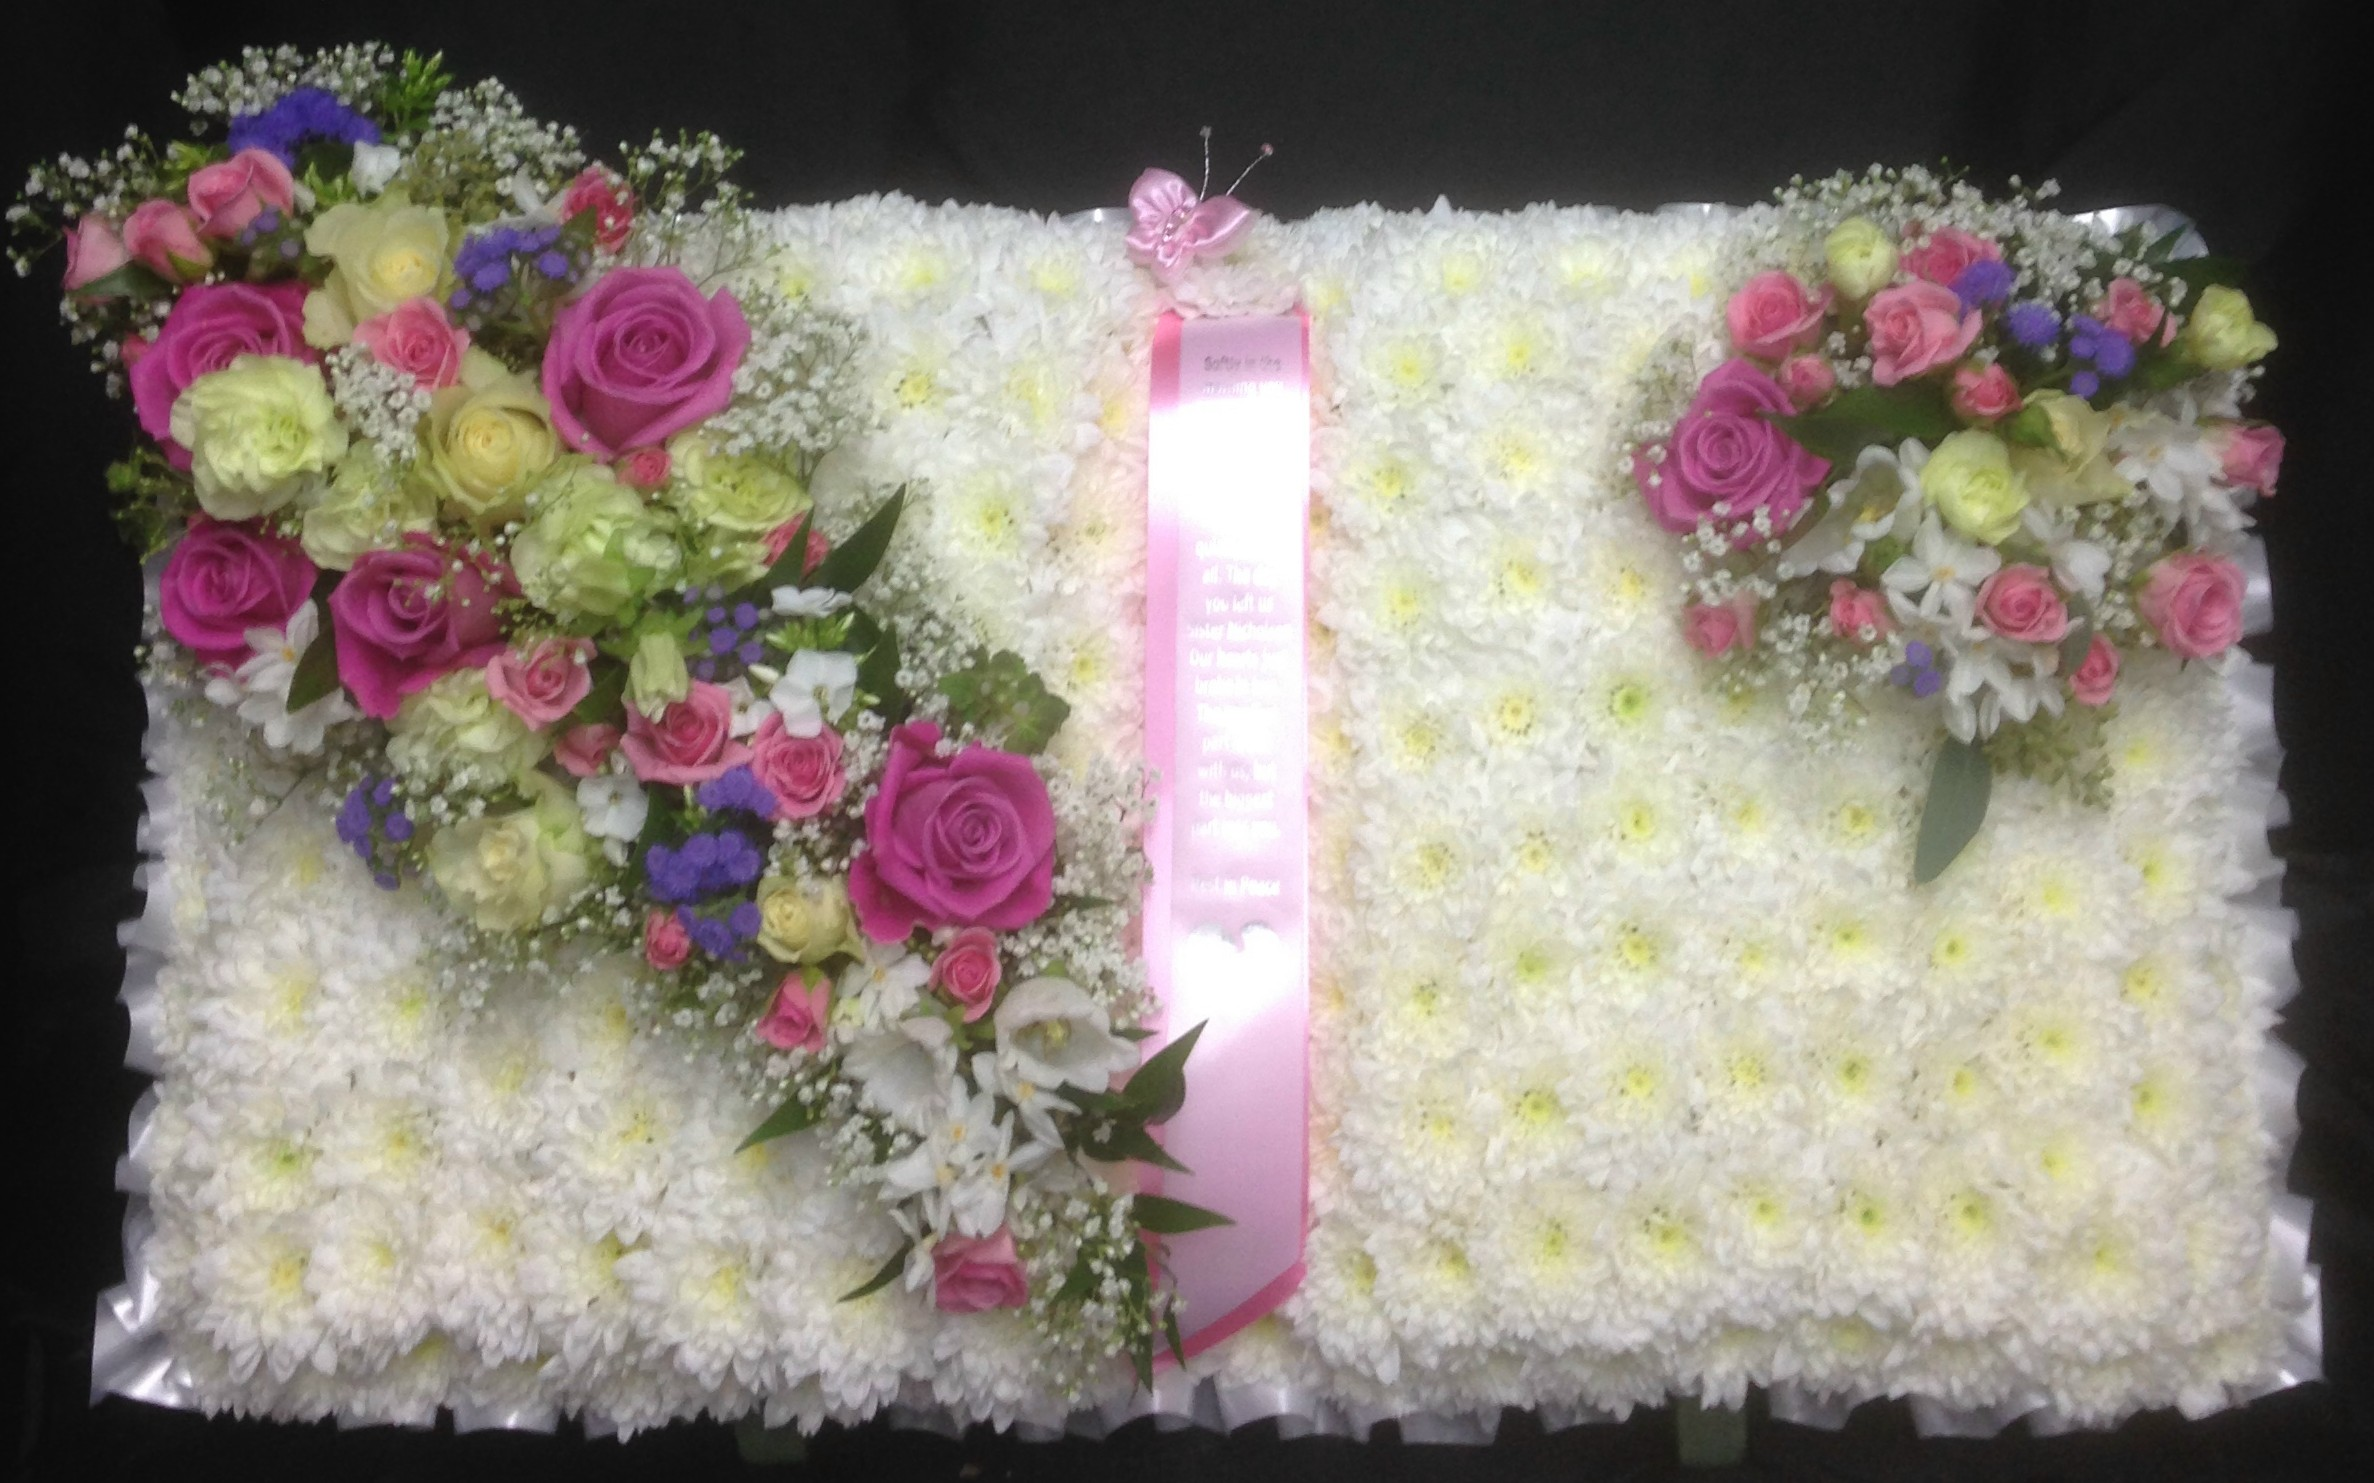 Funeral tributes birmingham by miss lilys florist birmingham funeral tributes birmingham izmirmasajfo